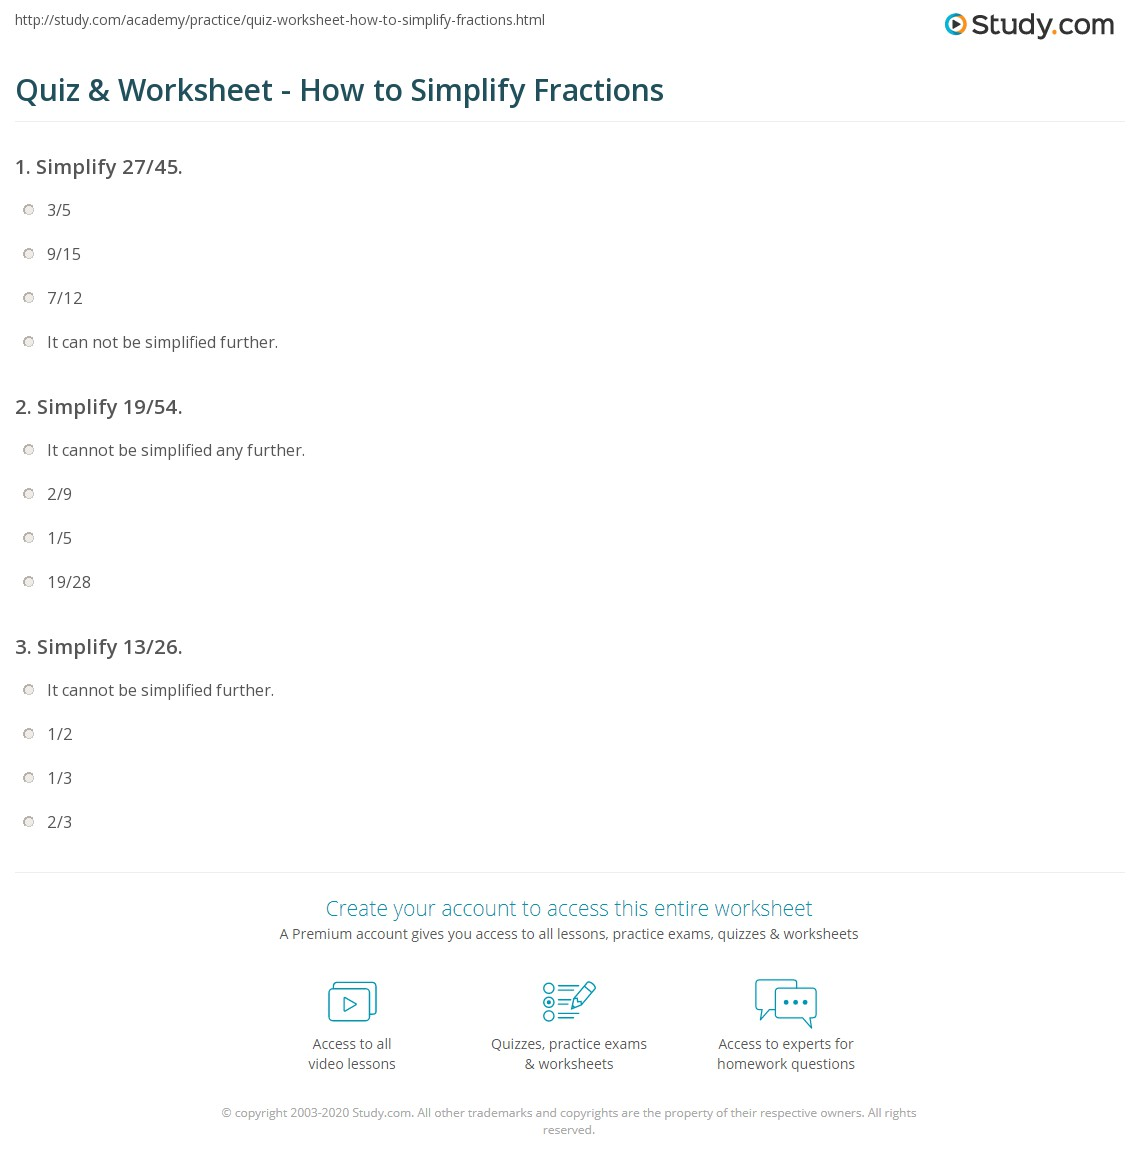 quiz & worksheet - how to simplify fractions | study